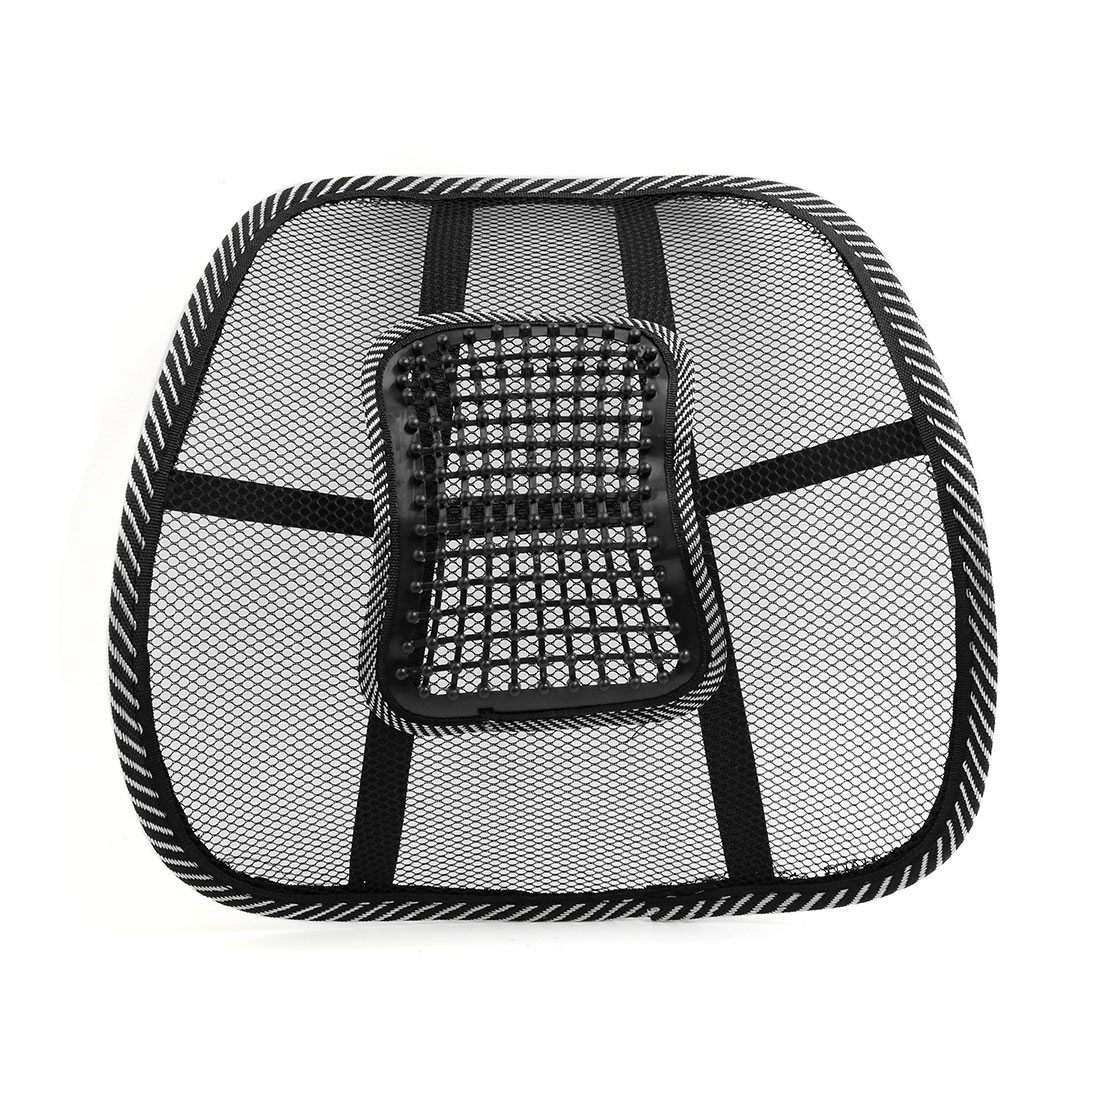 Black White Waist Lumbar Massage Mesh Cushion Back Support Pad for Car Office - image 5 of 5